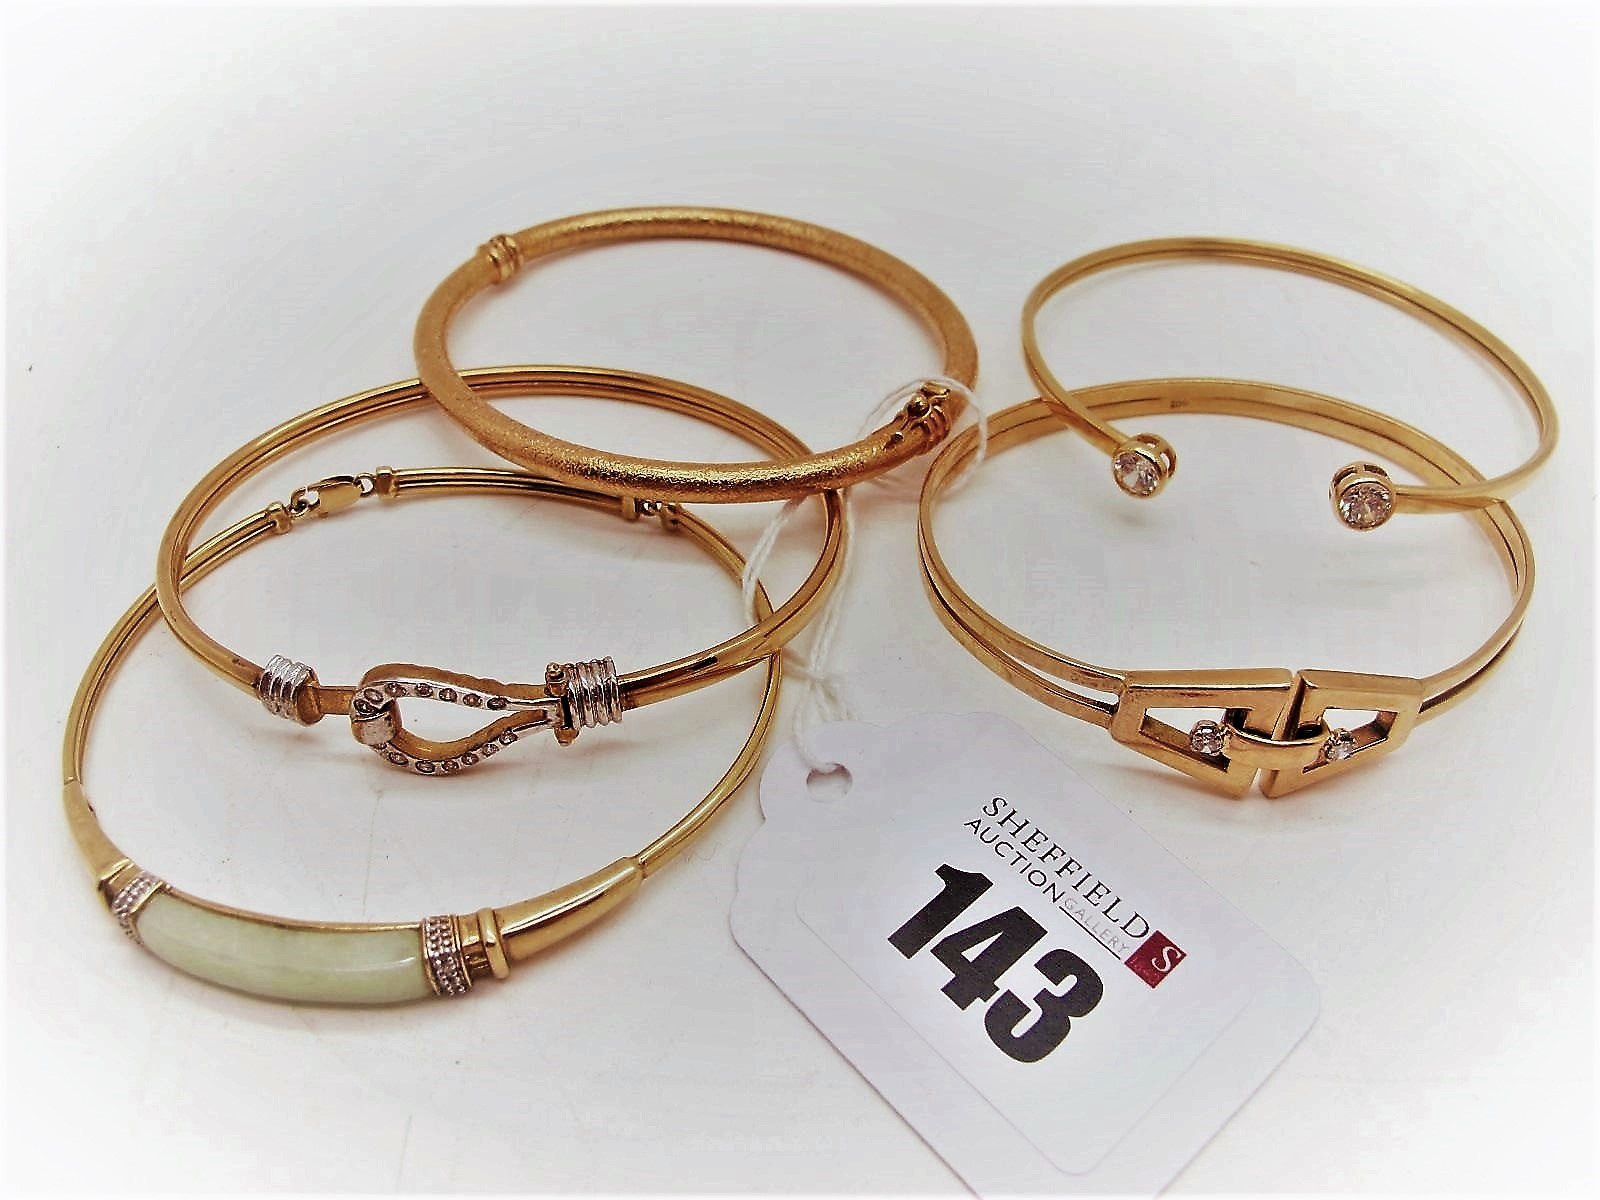 A 9ct Gold Bangle, with loop and hook fastener; together with a hinged bangle, of textured finish; a